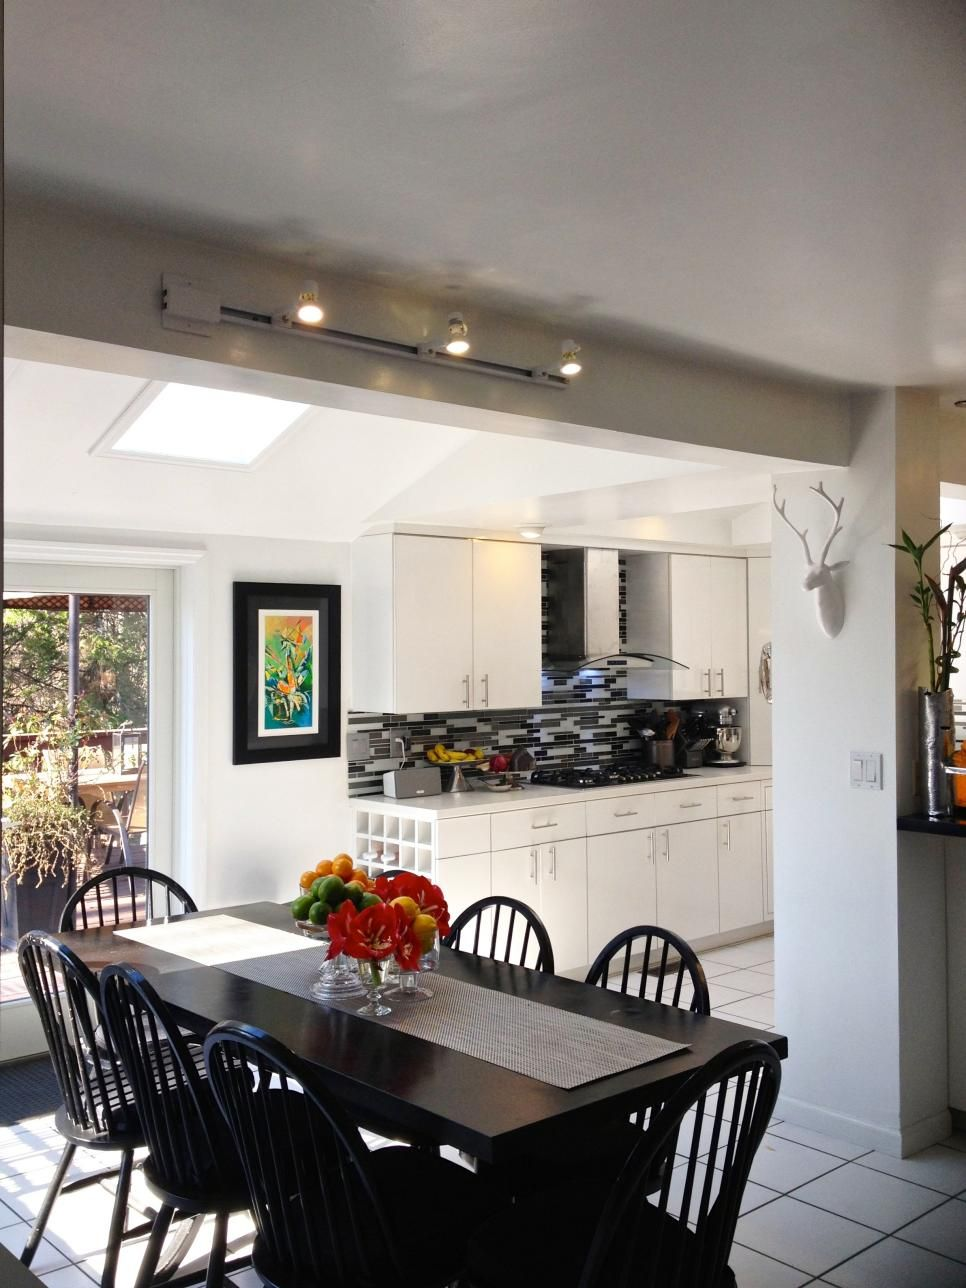 This Open Black And White Kitchen Puts A Chef Right In The Middle Of Gourmet Paradise Transitions Seamlessly Into Adjoining Dining Space